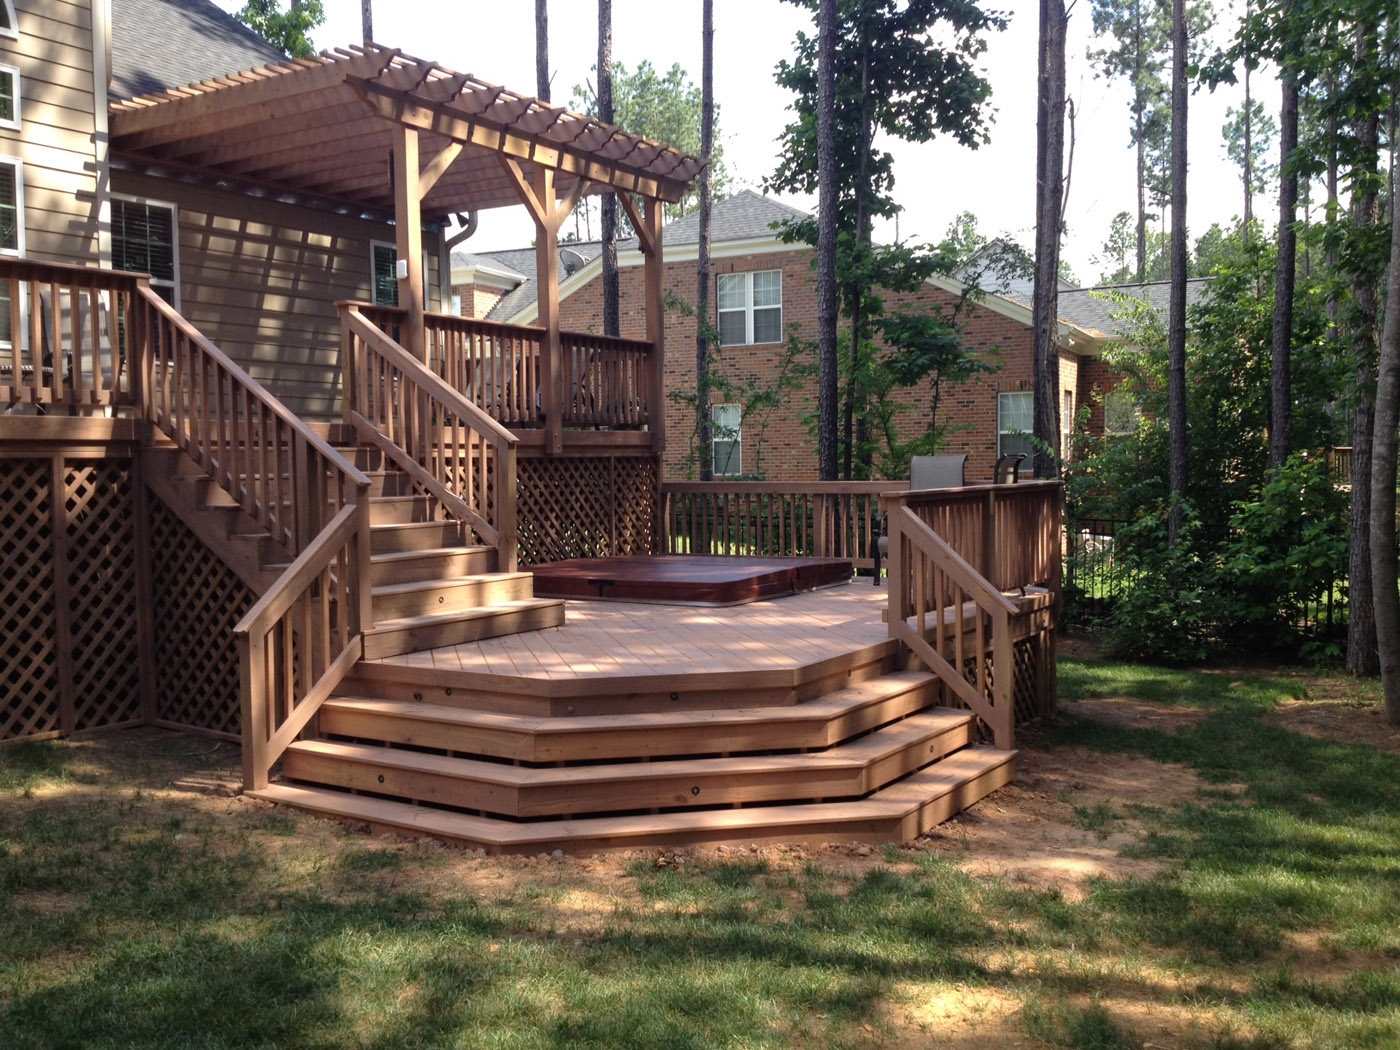 Raleigh Multi-Level Decking: More Than Just a Beautiful ... on Tiered Patio Ideas id=83205